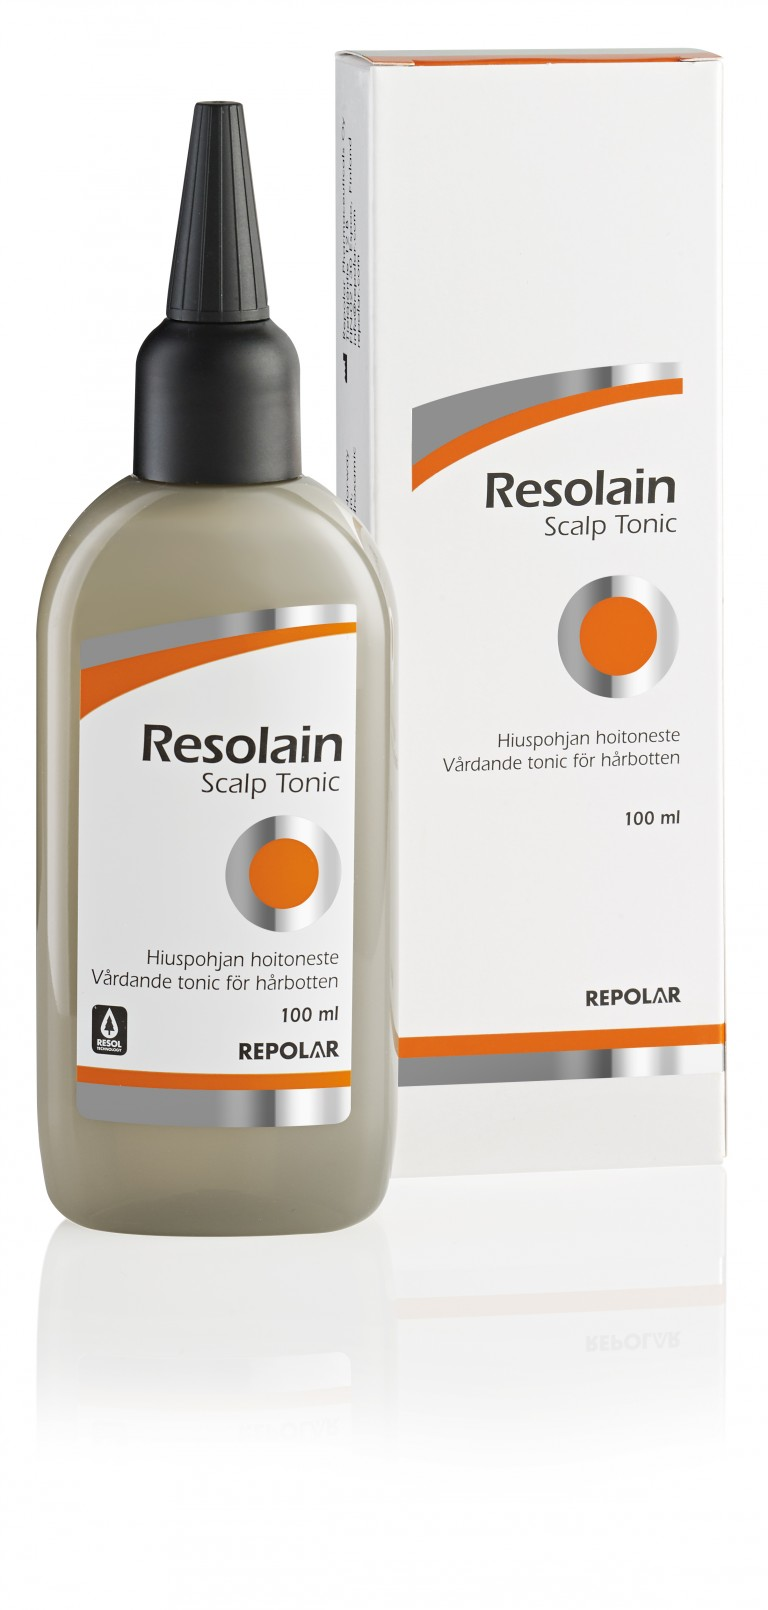 Resolain